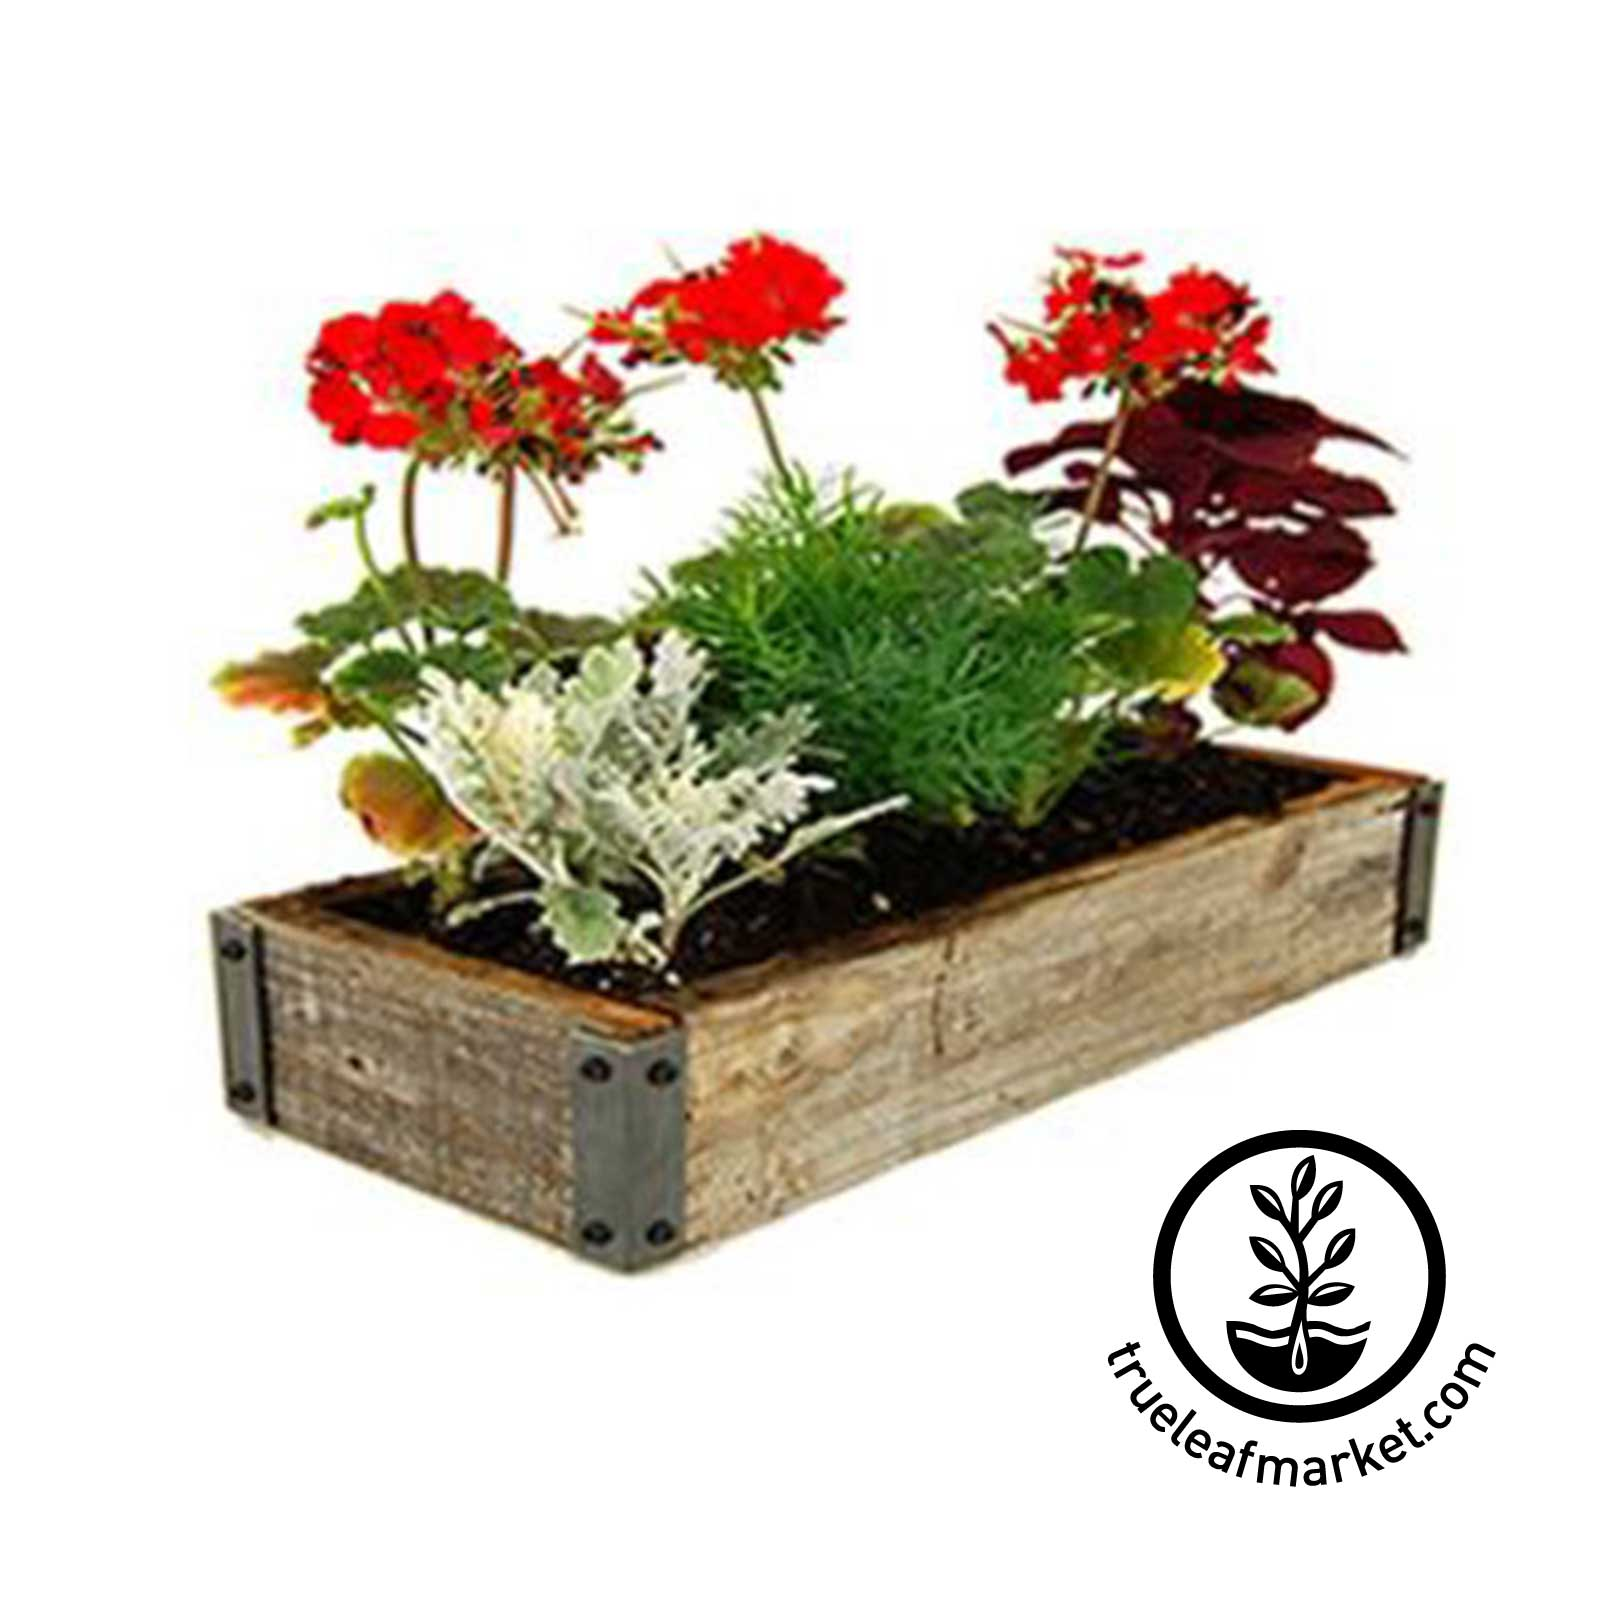 Barnwood Planter - Flower Garden Kit